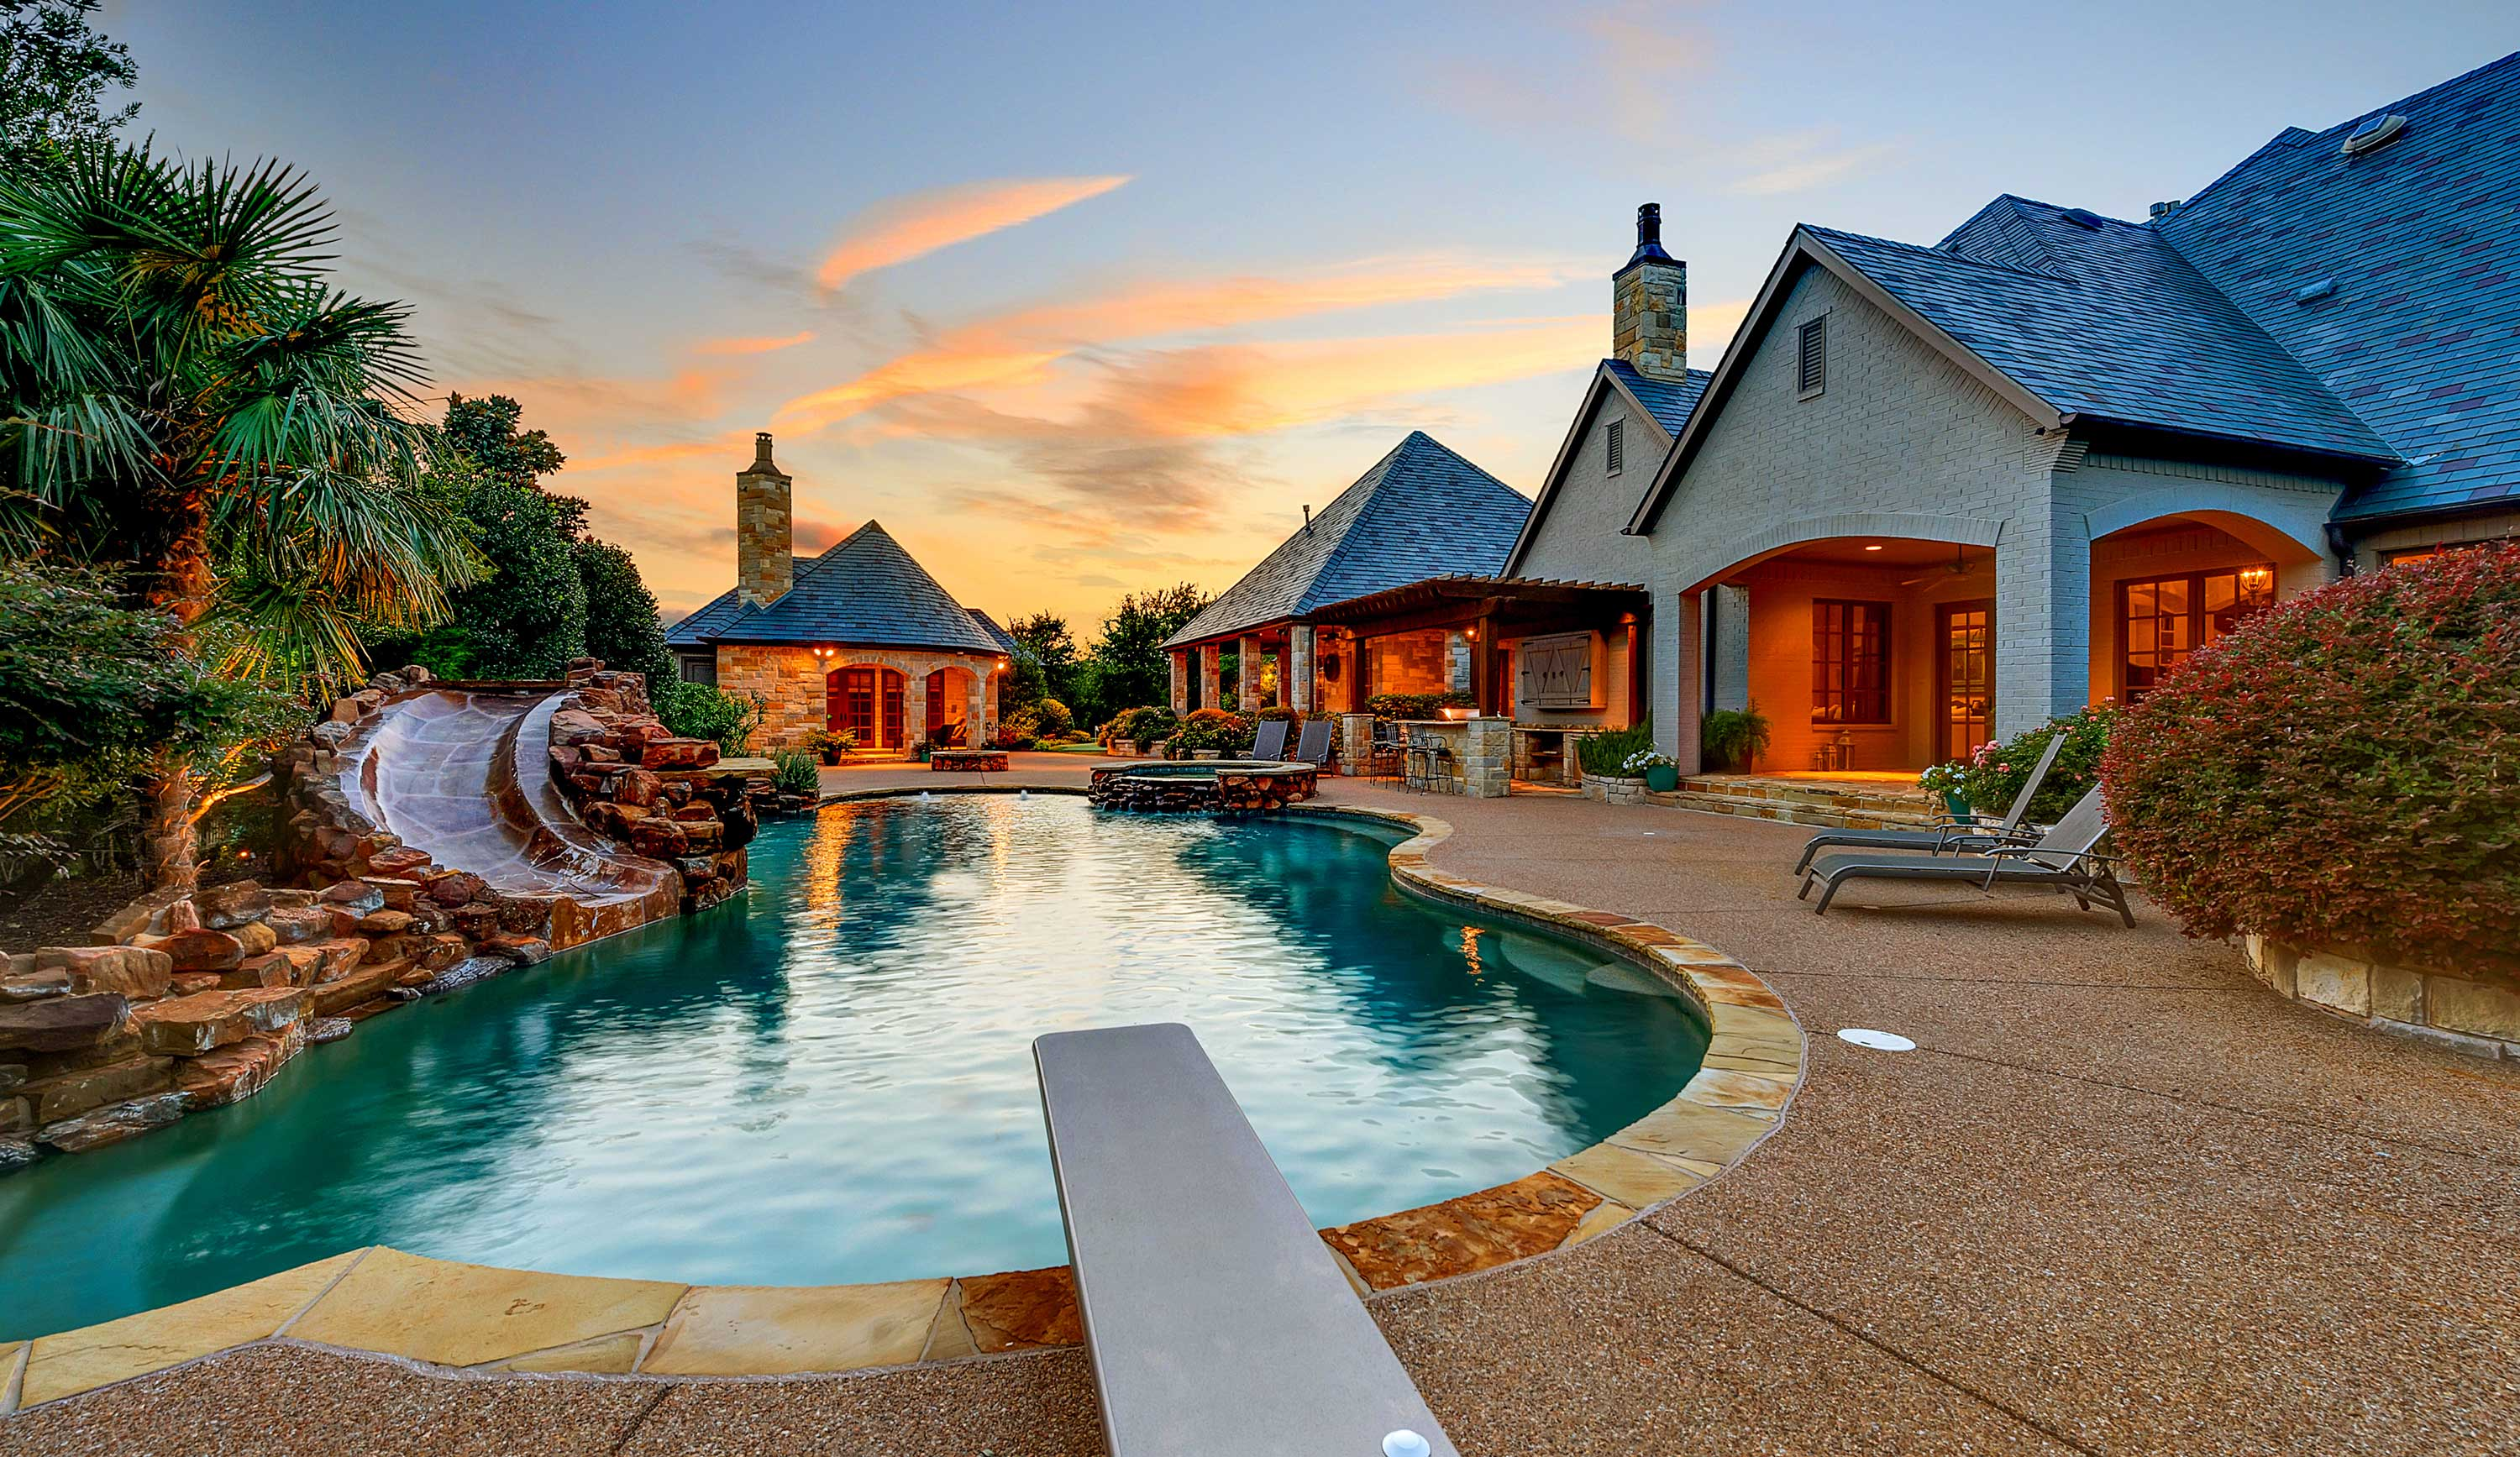 At this Texas home, a resort-style pool with a waterslide and diving board, a media room, game room, and craft room provide year-round entertainment for children.